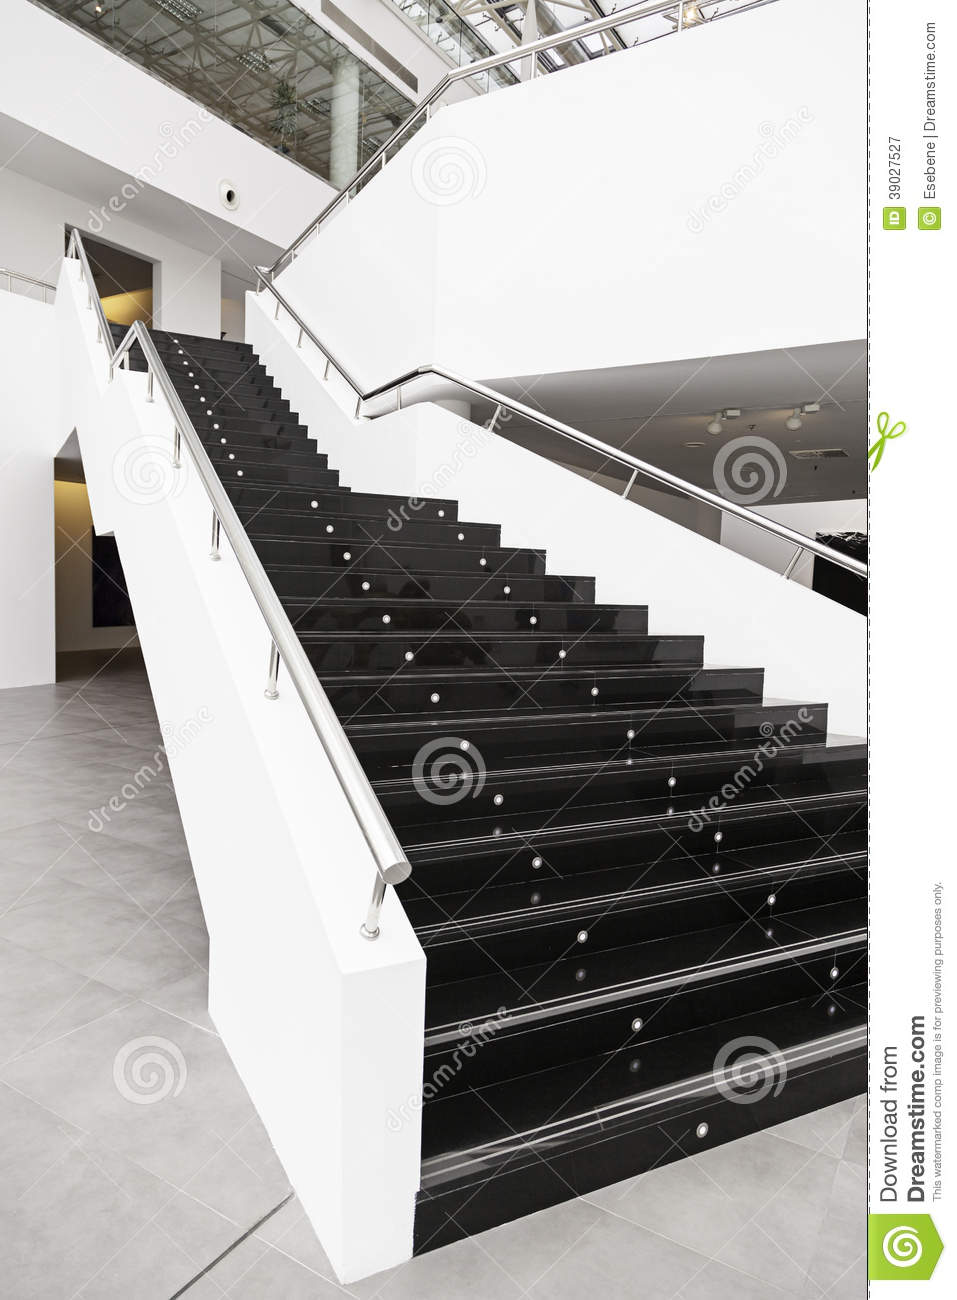 2 548 Black Marble Stairs Photos Free Royalty Free Stock Photos From Dreamstime